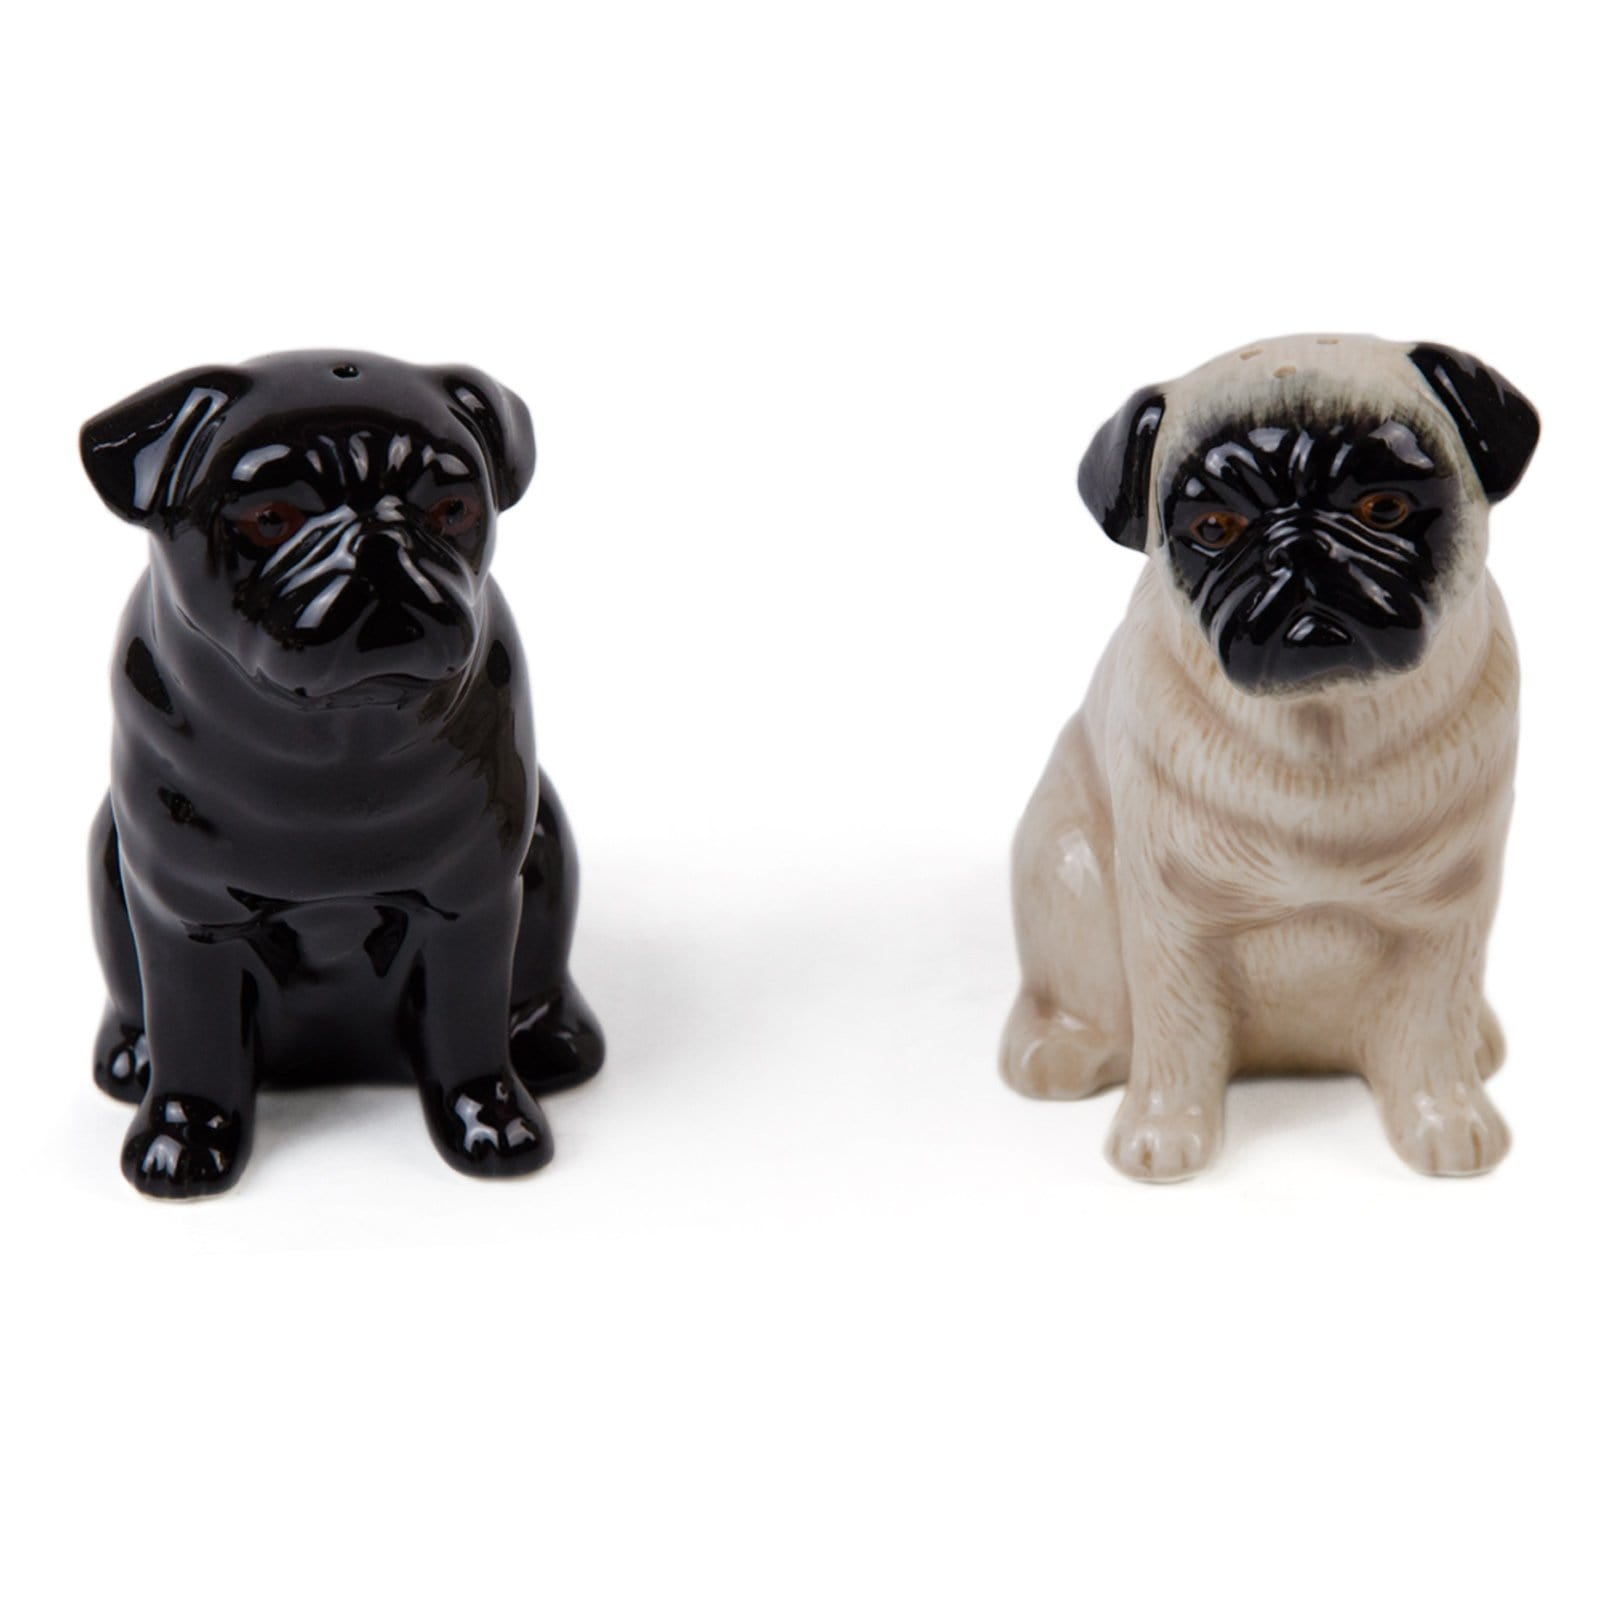 Pug Salt and Pepper Shakers